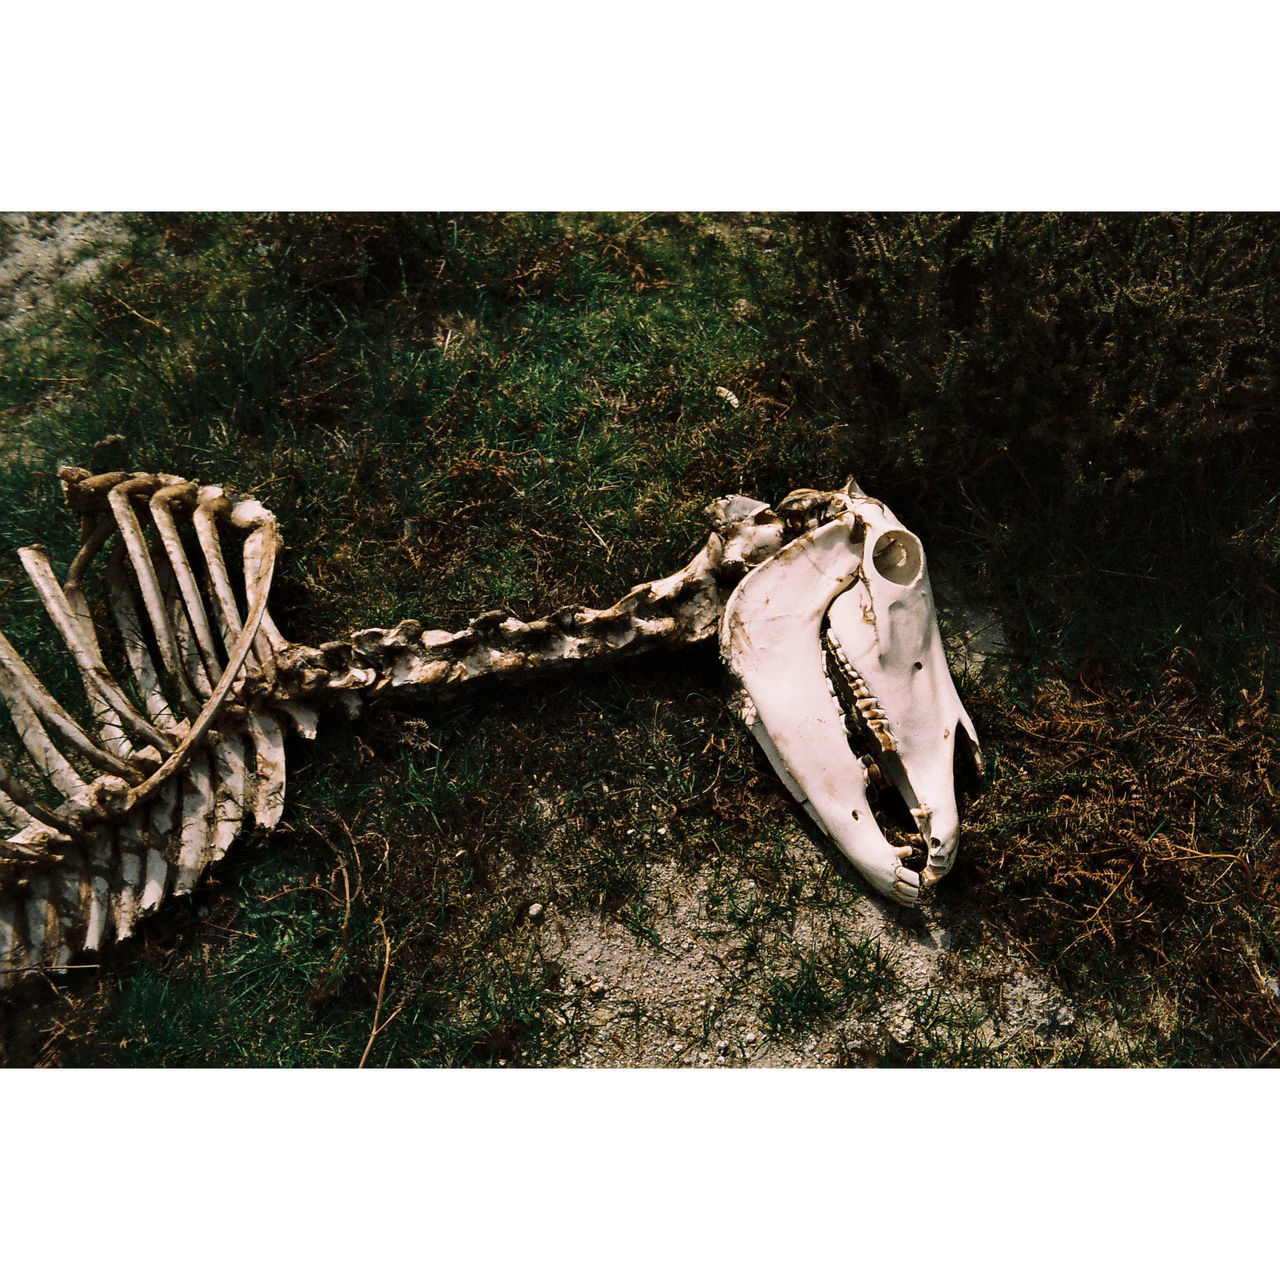 35mm Analogue Analogue Photography Day Dead Dead Animal Film Horse Nature Outdoors Portugal EyeEmNewHere